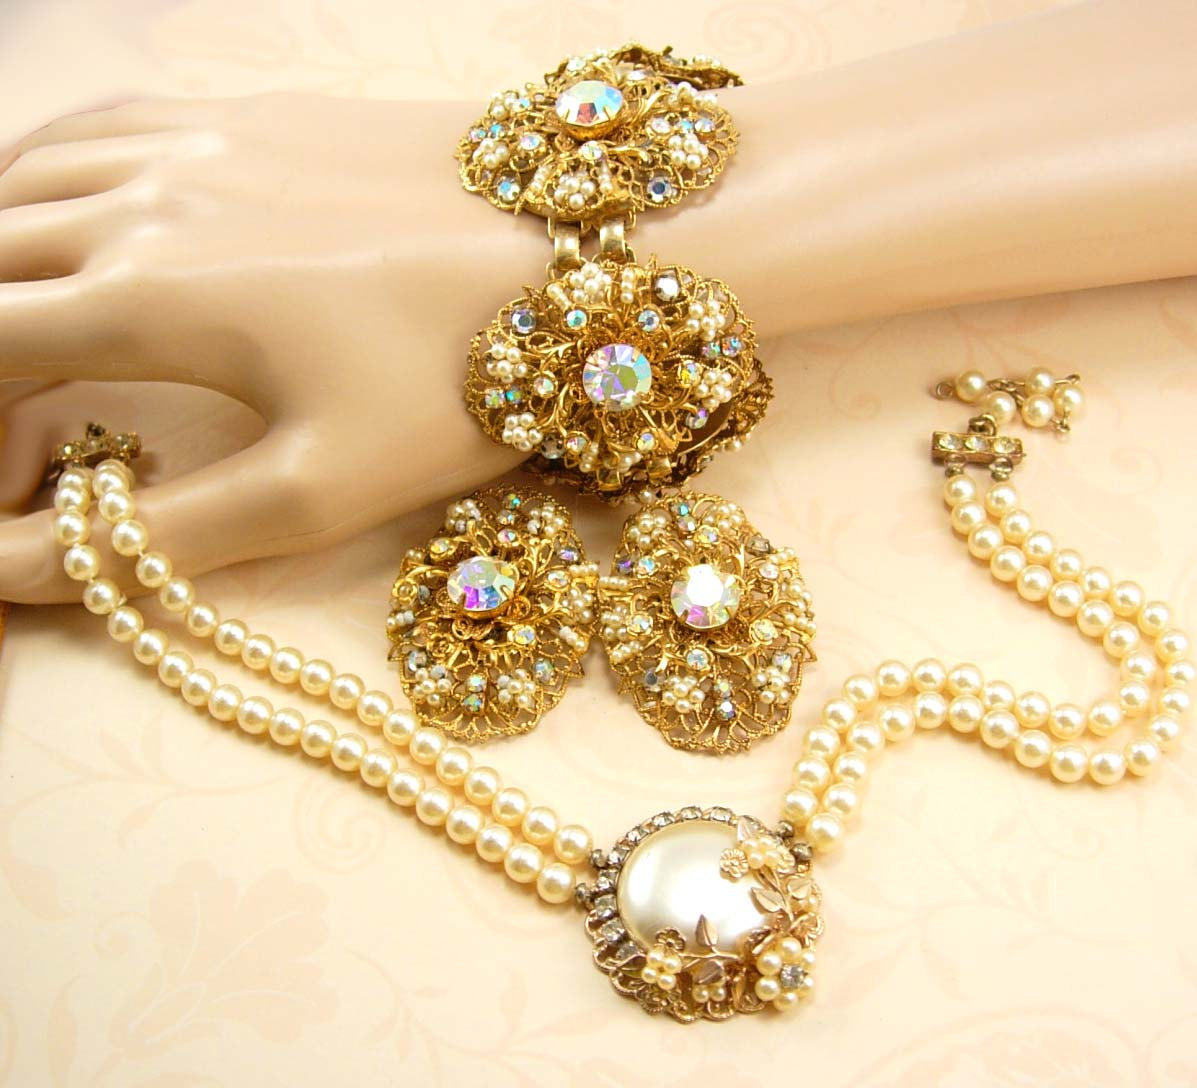 BIG Haskell style Parure Seed PEarl CLuster bracelet earrings necklace - $550.00